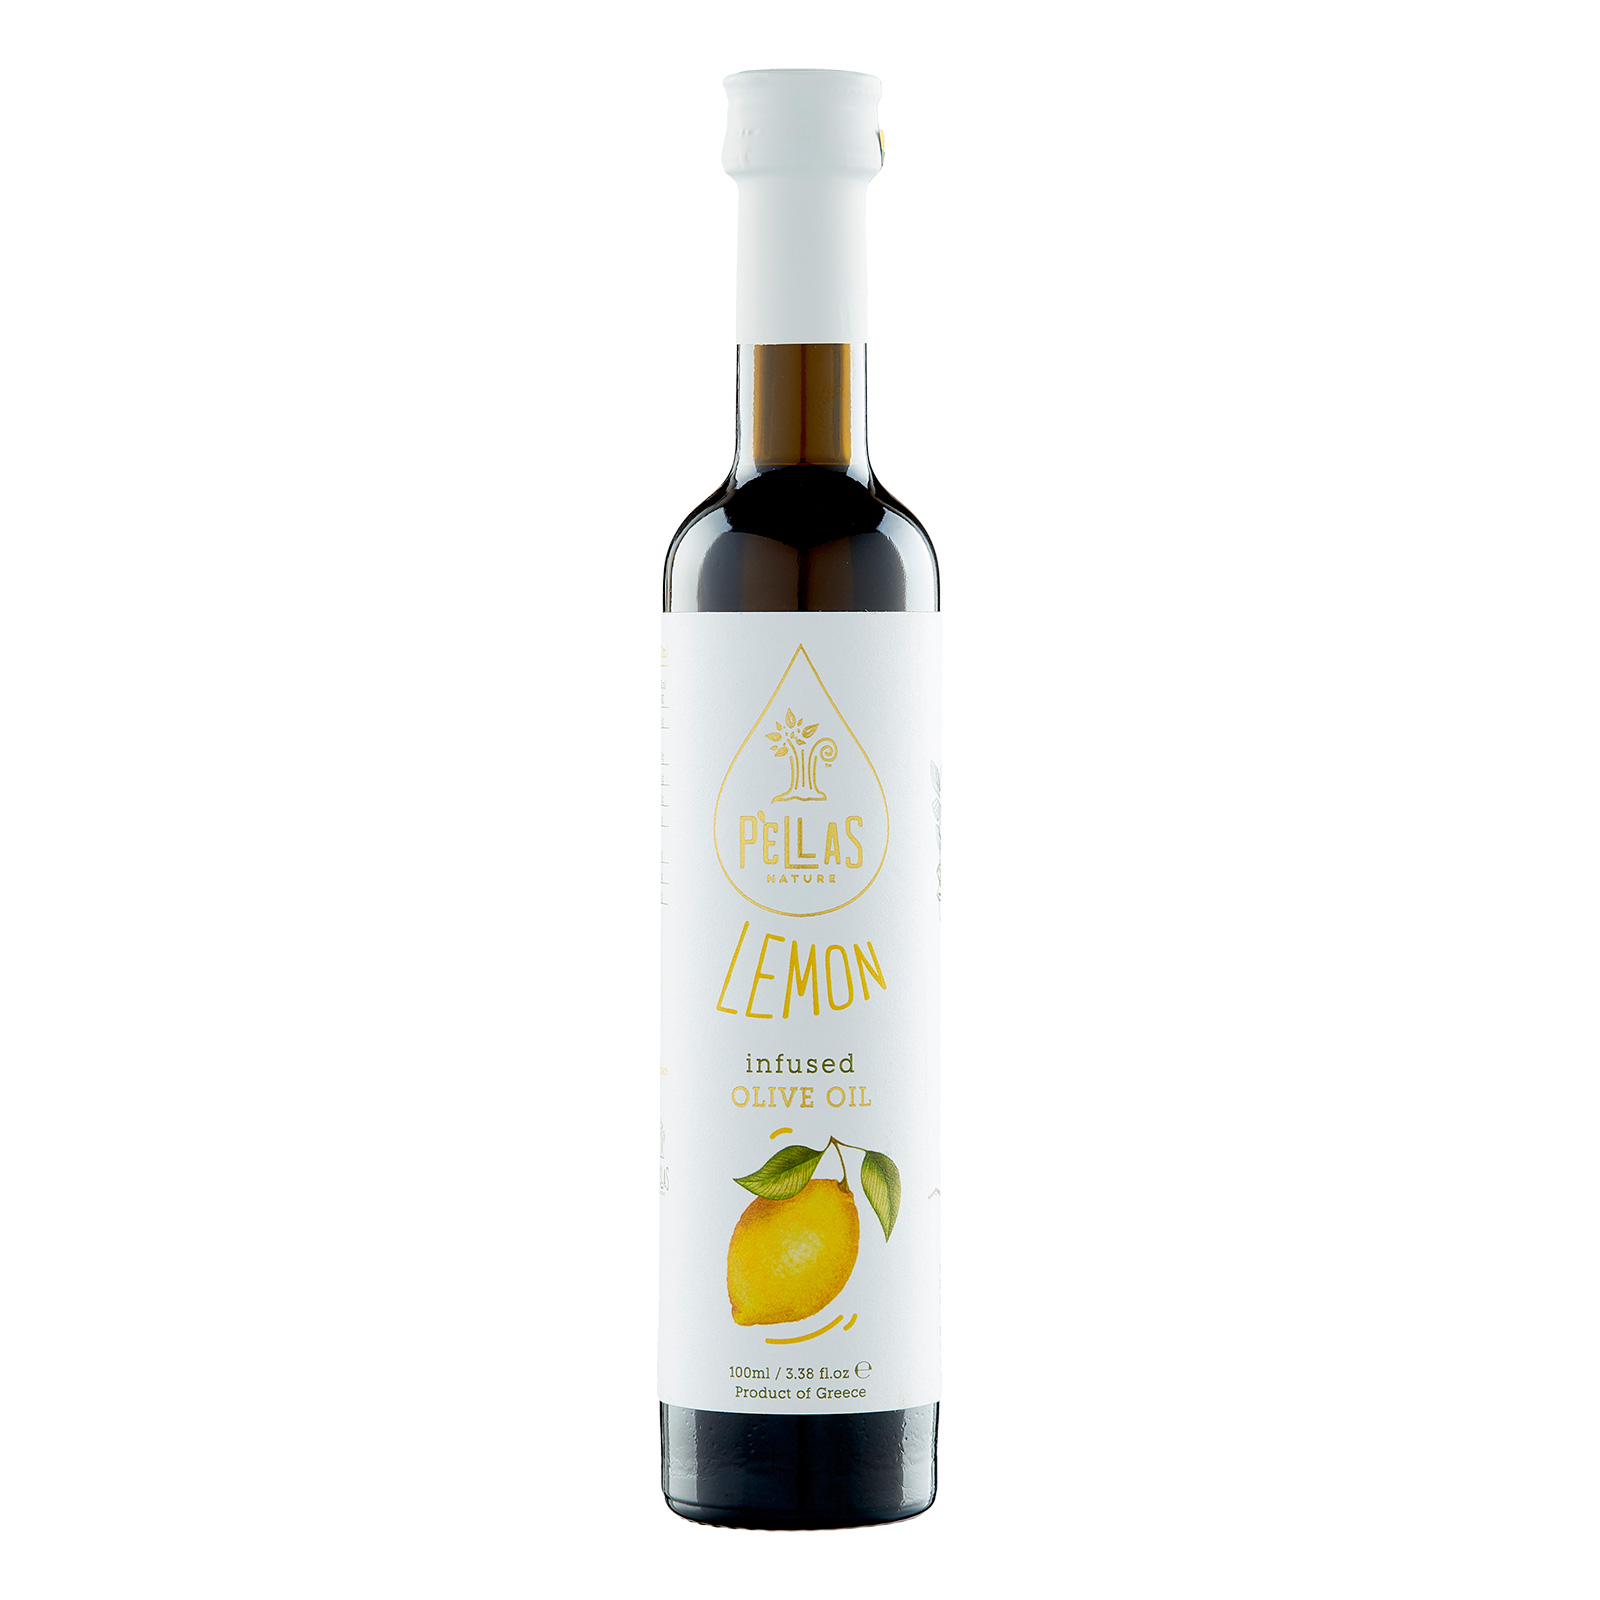 Pellas Nature Lemon infused Extra Virgin Olive Oil 3.38 fl.oz Bottle